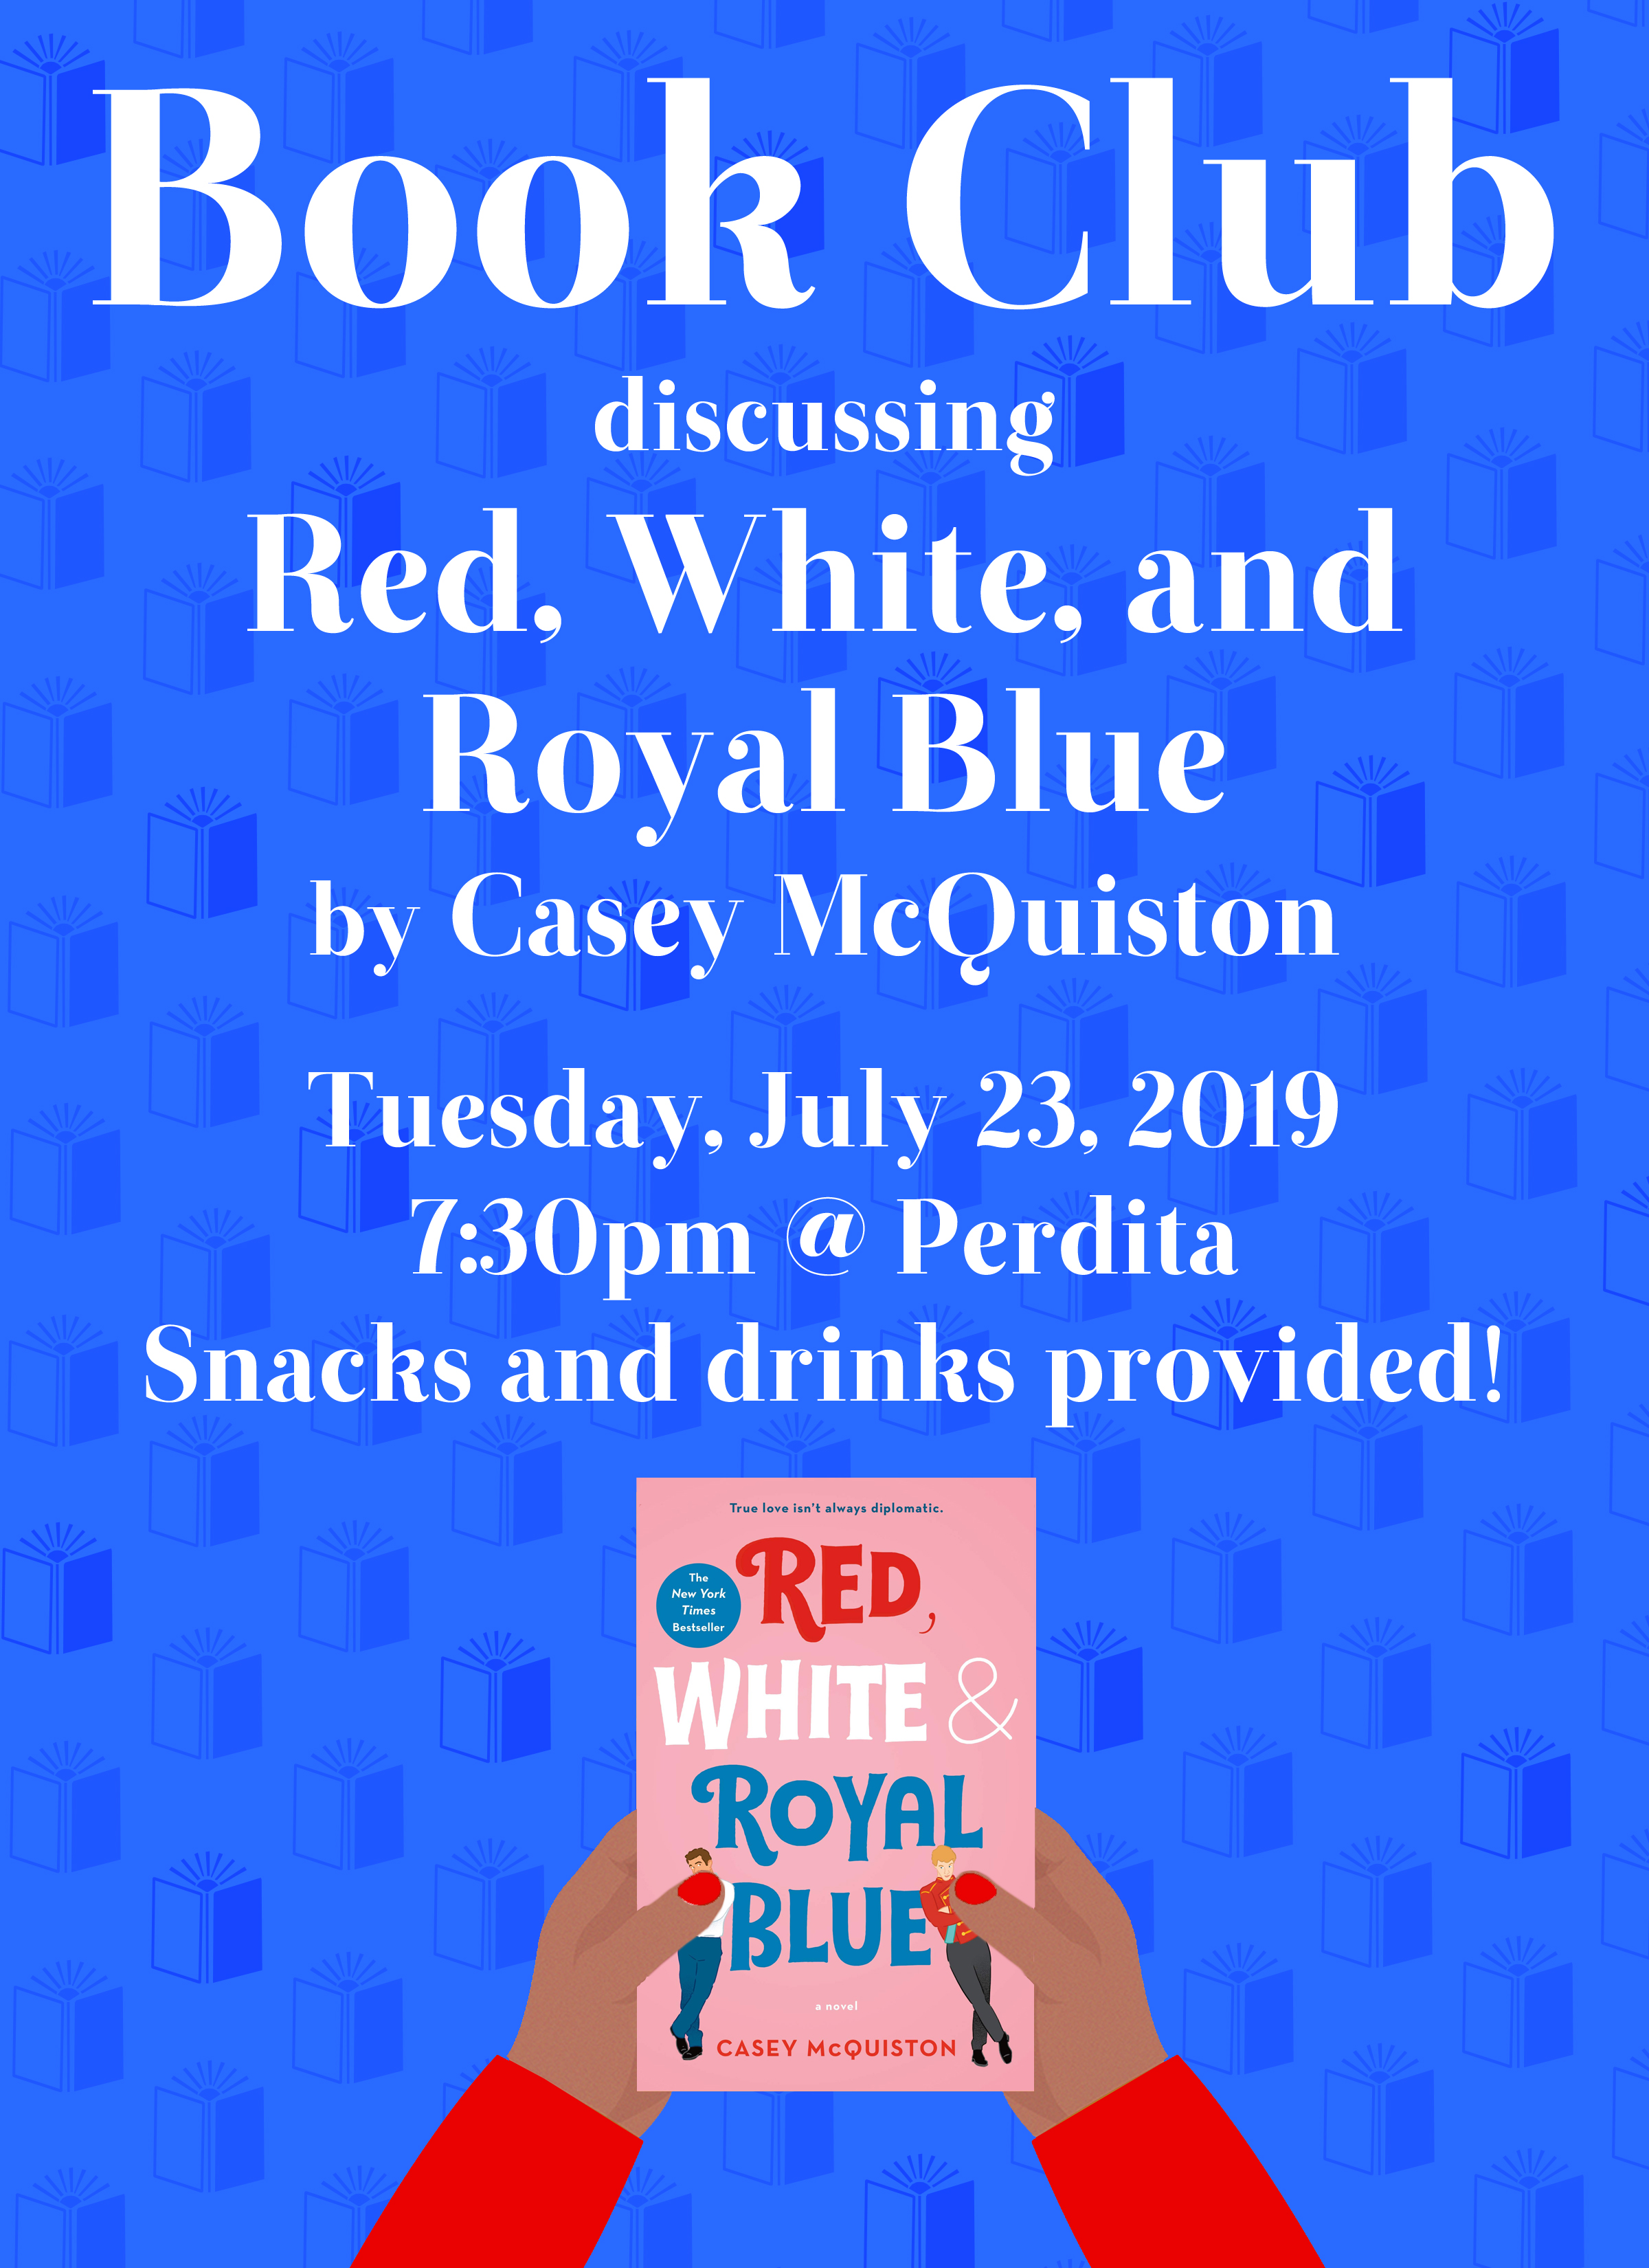 book club invite perdita red white and royal blue.jpg